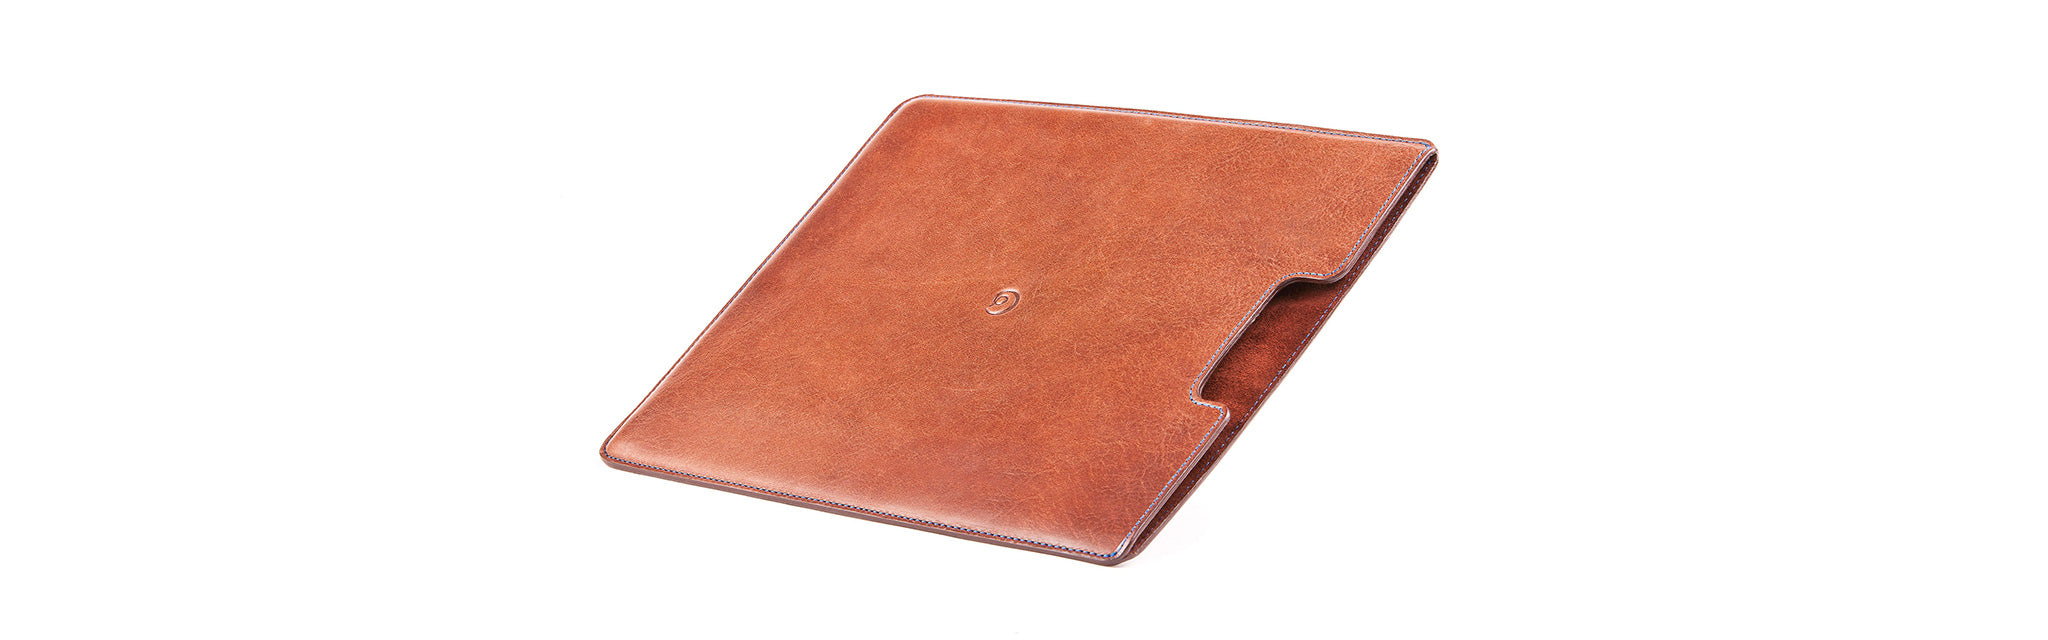 iPad cover in dark brown